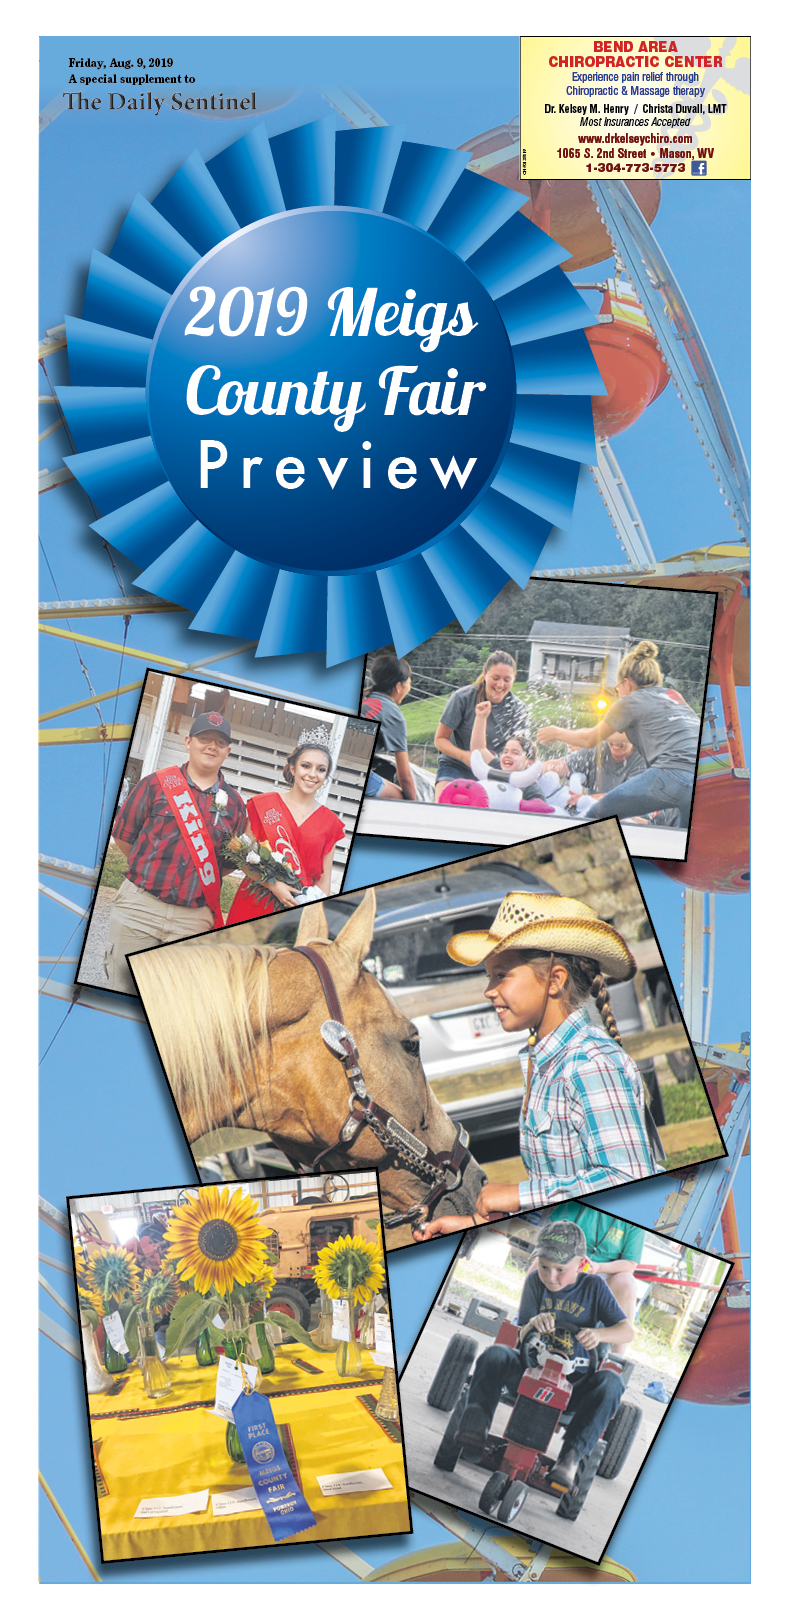 Meigs County Fair Preview 2019